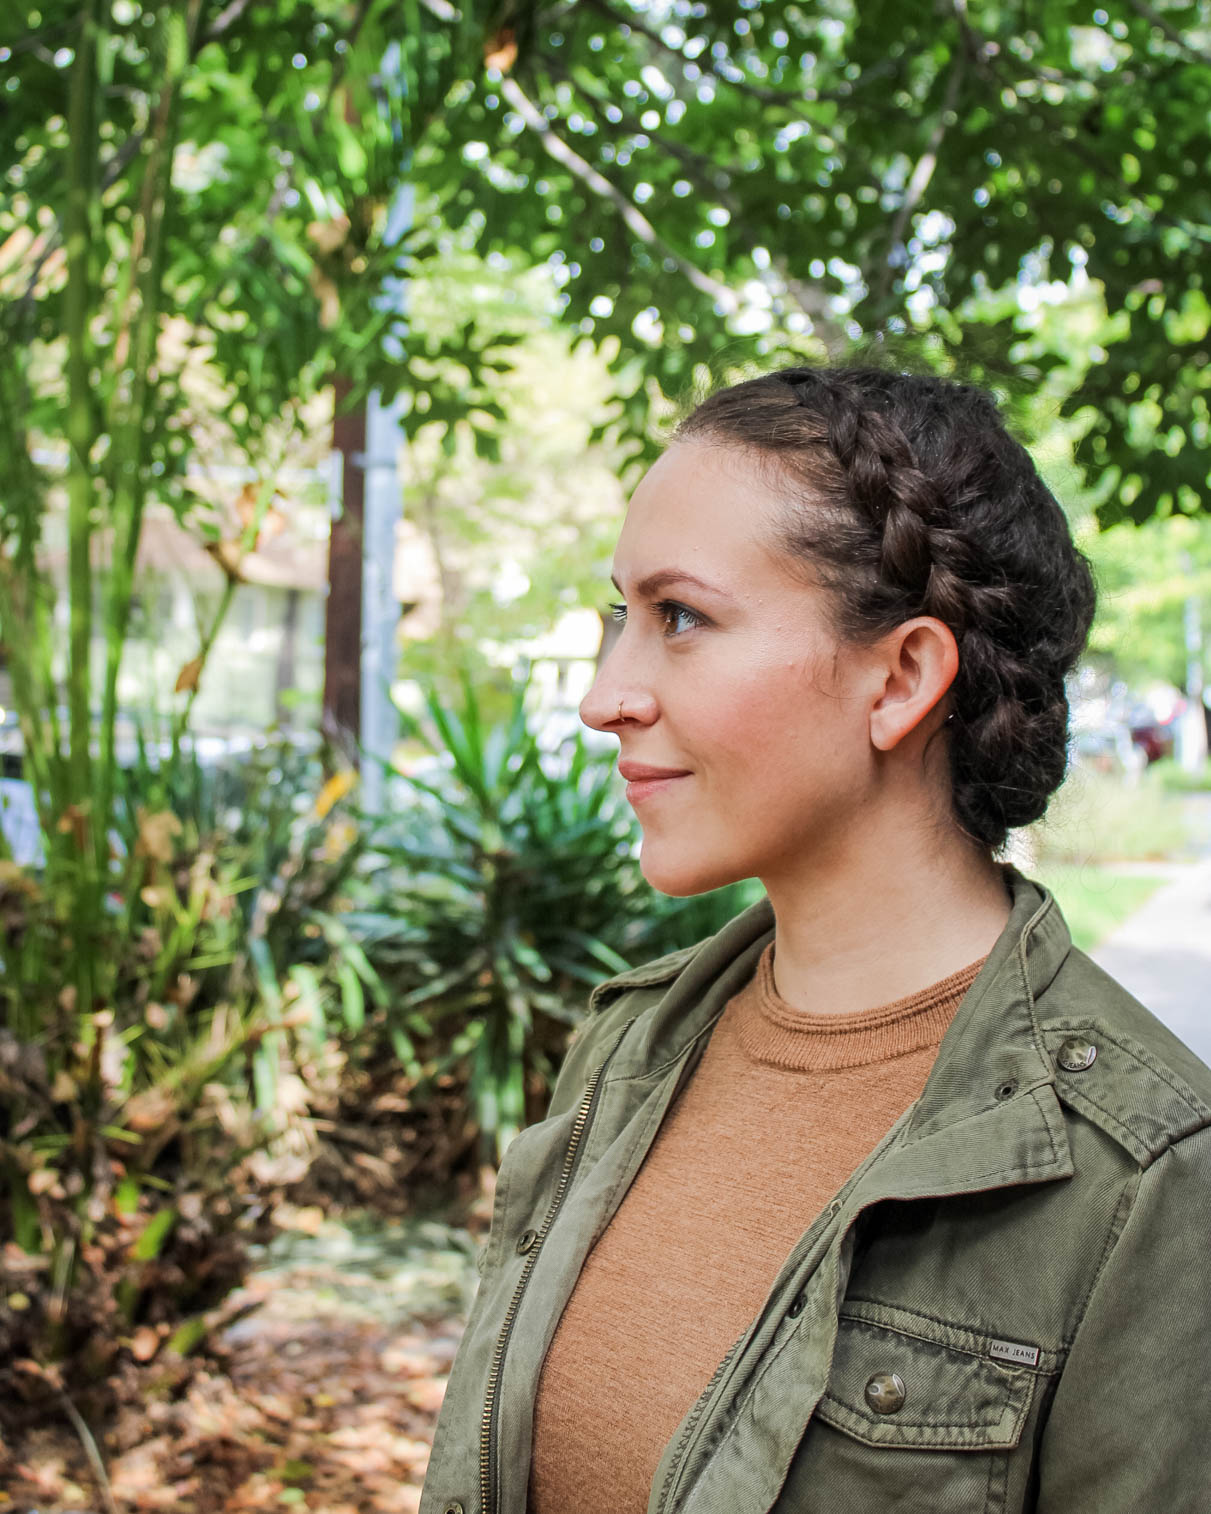 braided naturally curly updo hairstyle for a job interview